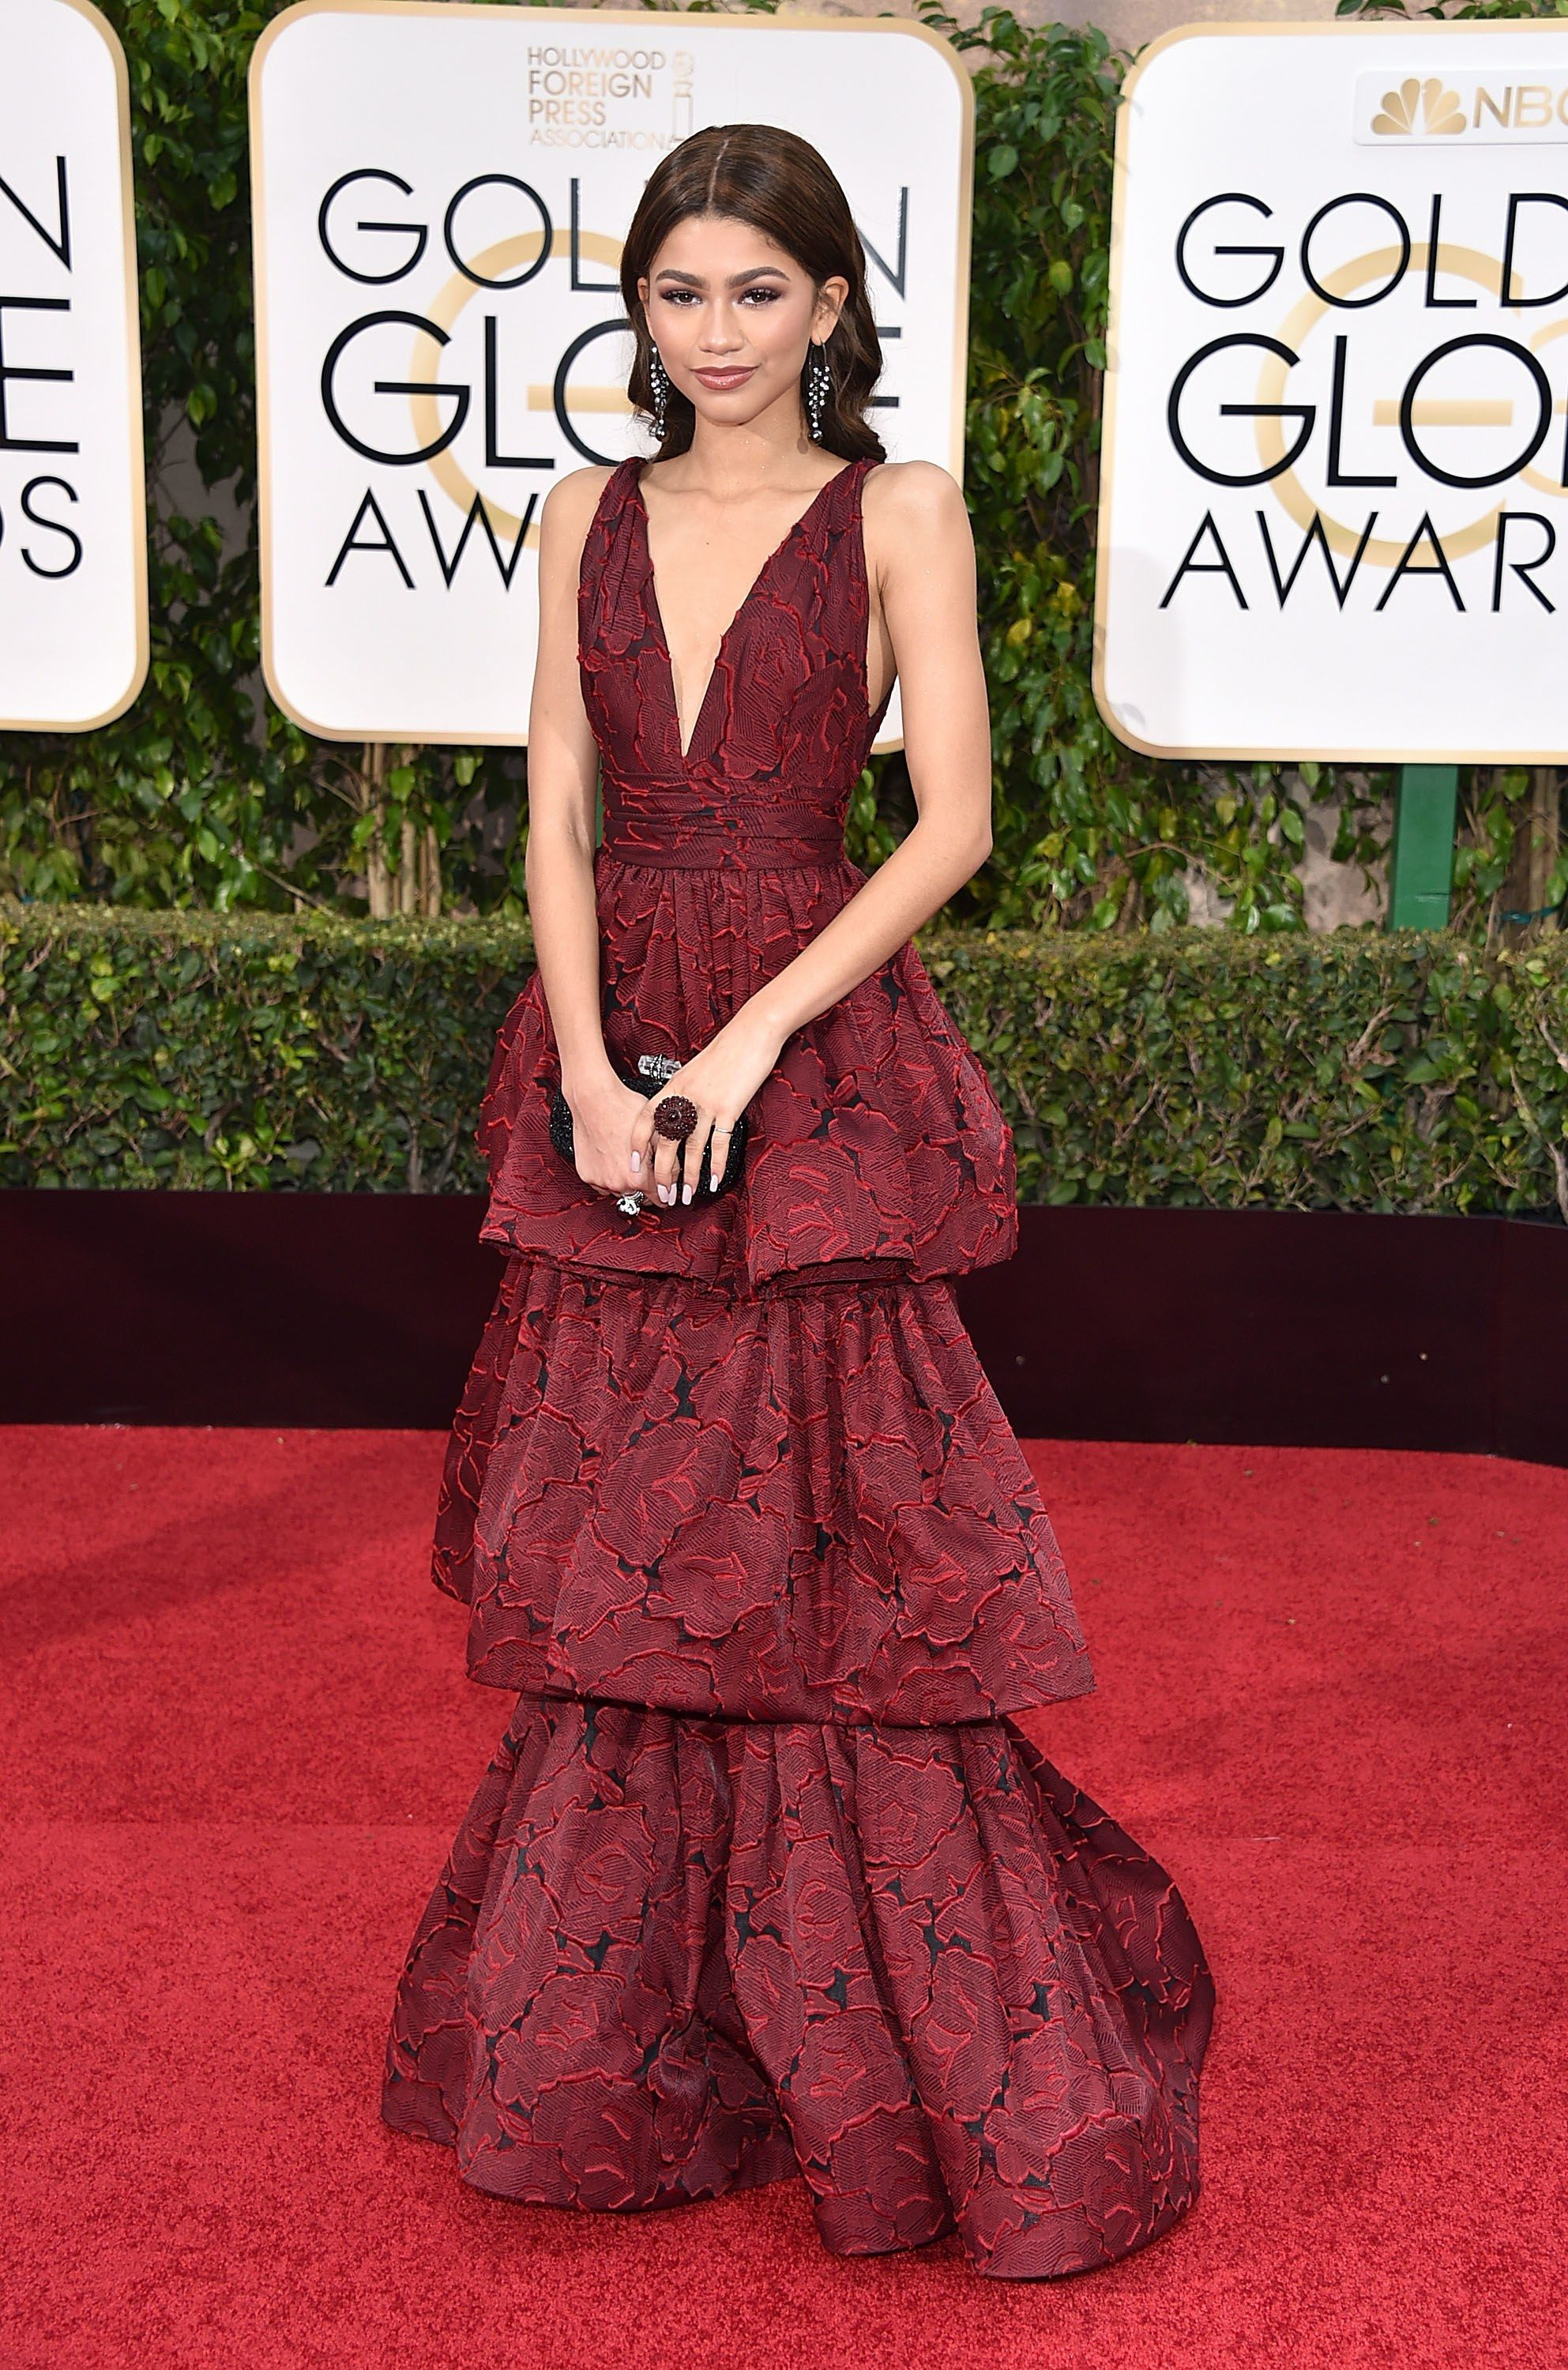 af027dc6f869 Why Zendaya Is Set to Become Hollywood s Next Great Style Icon Photos